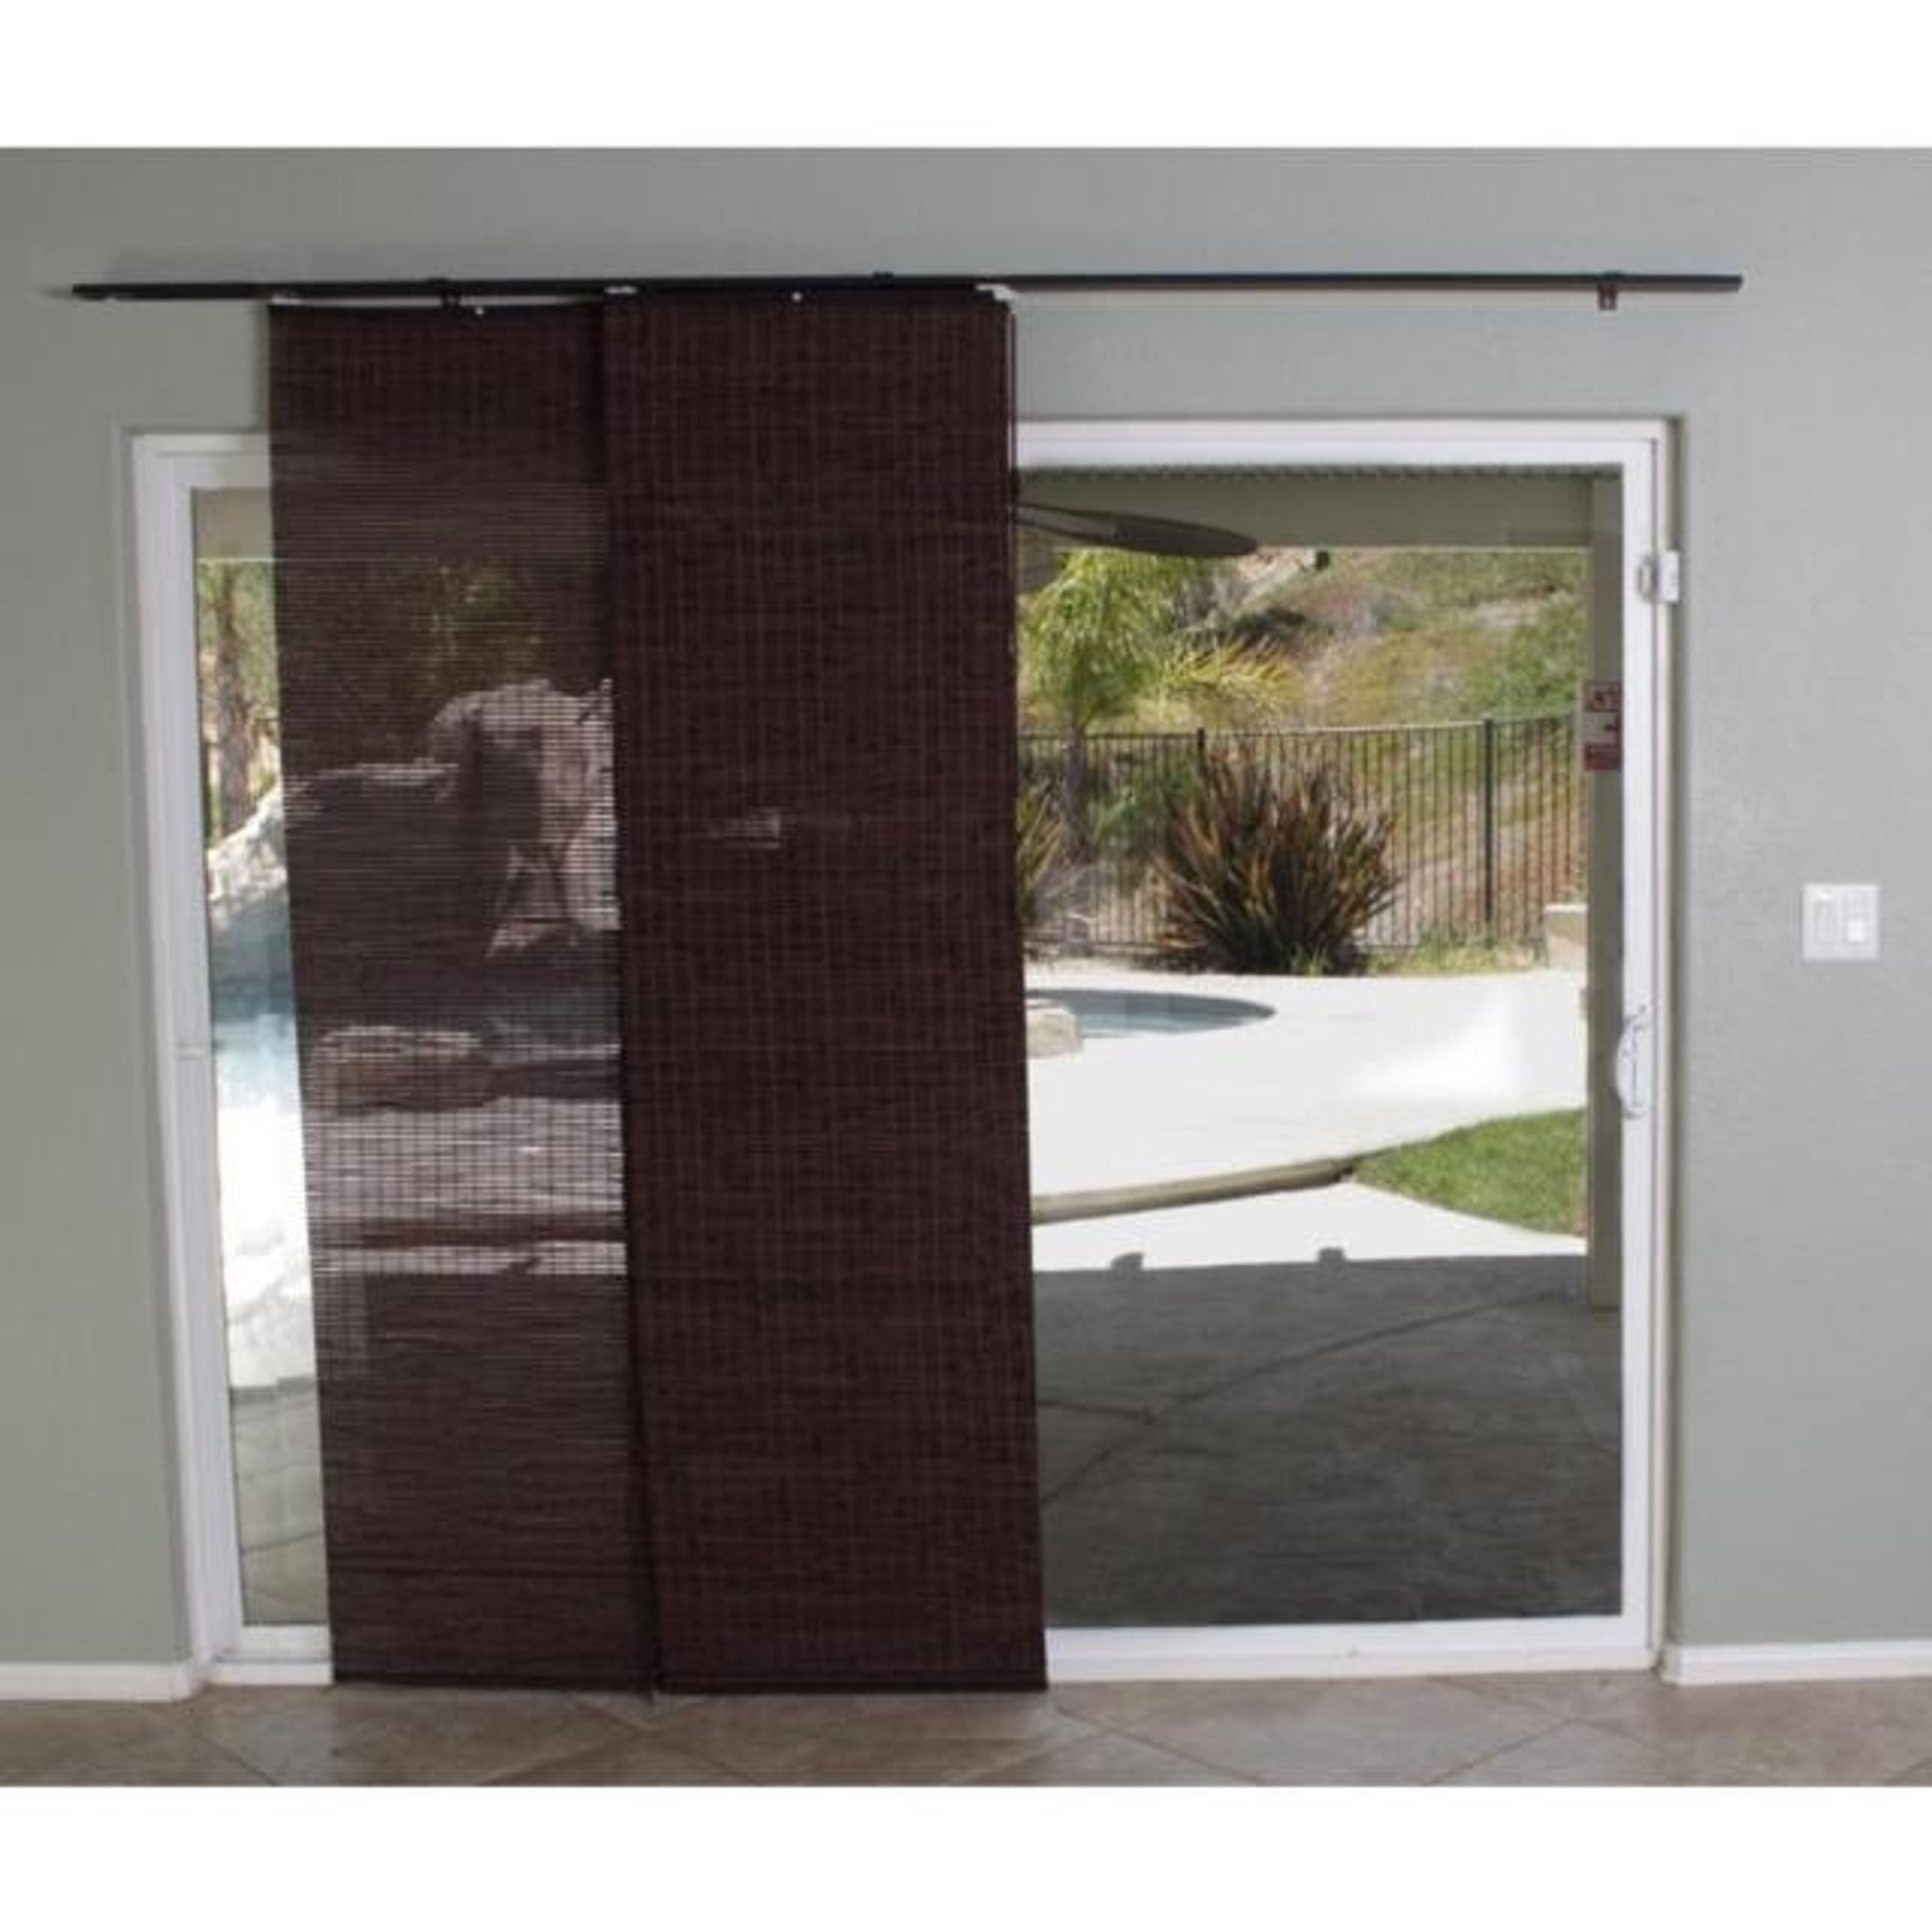 Special Decorative Sliding Patio Door Walnut Bamboo Panel Track, 78''W X 84'' L by Bamboo Panel Track